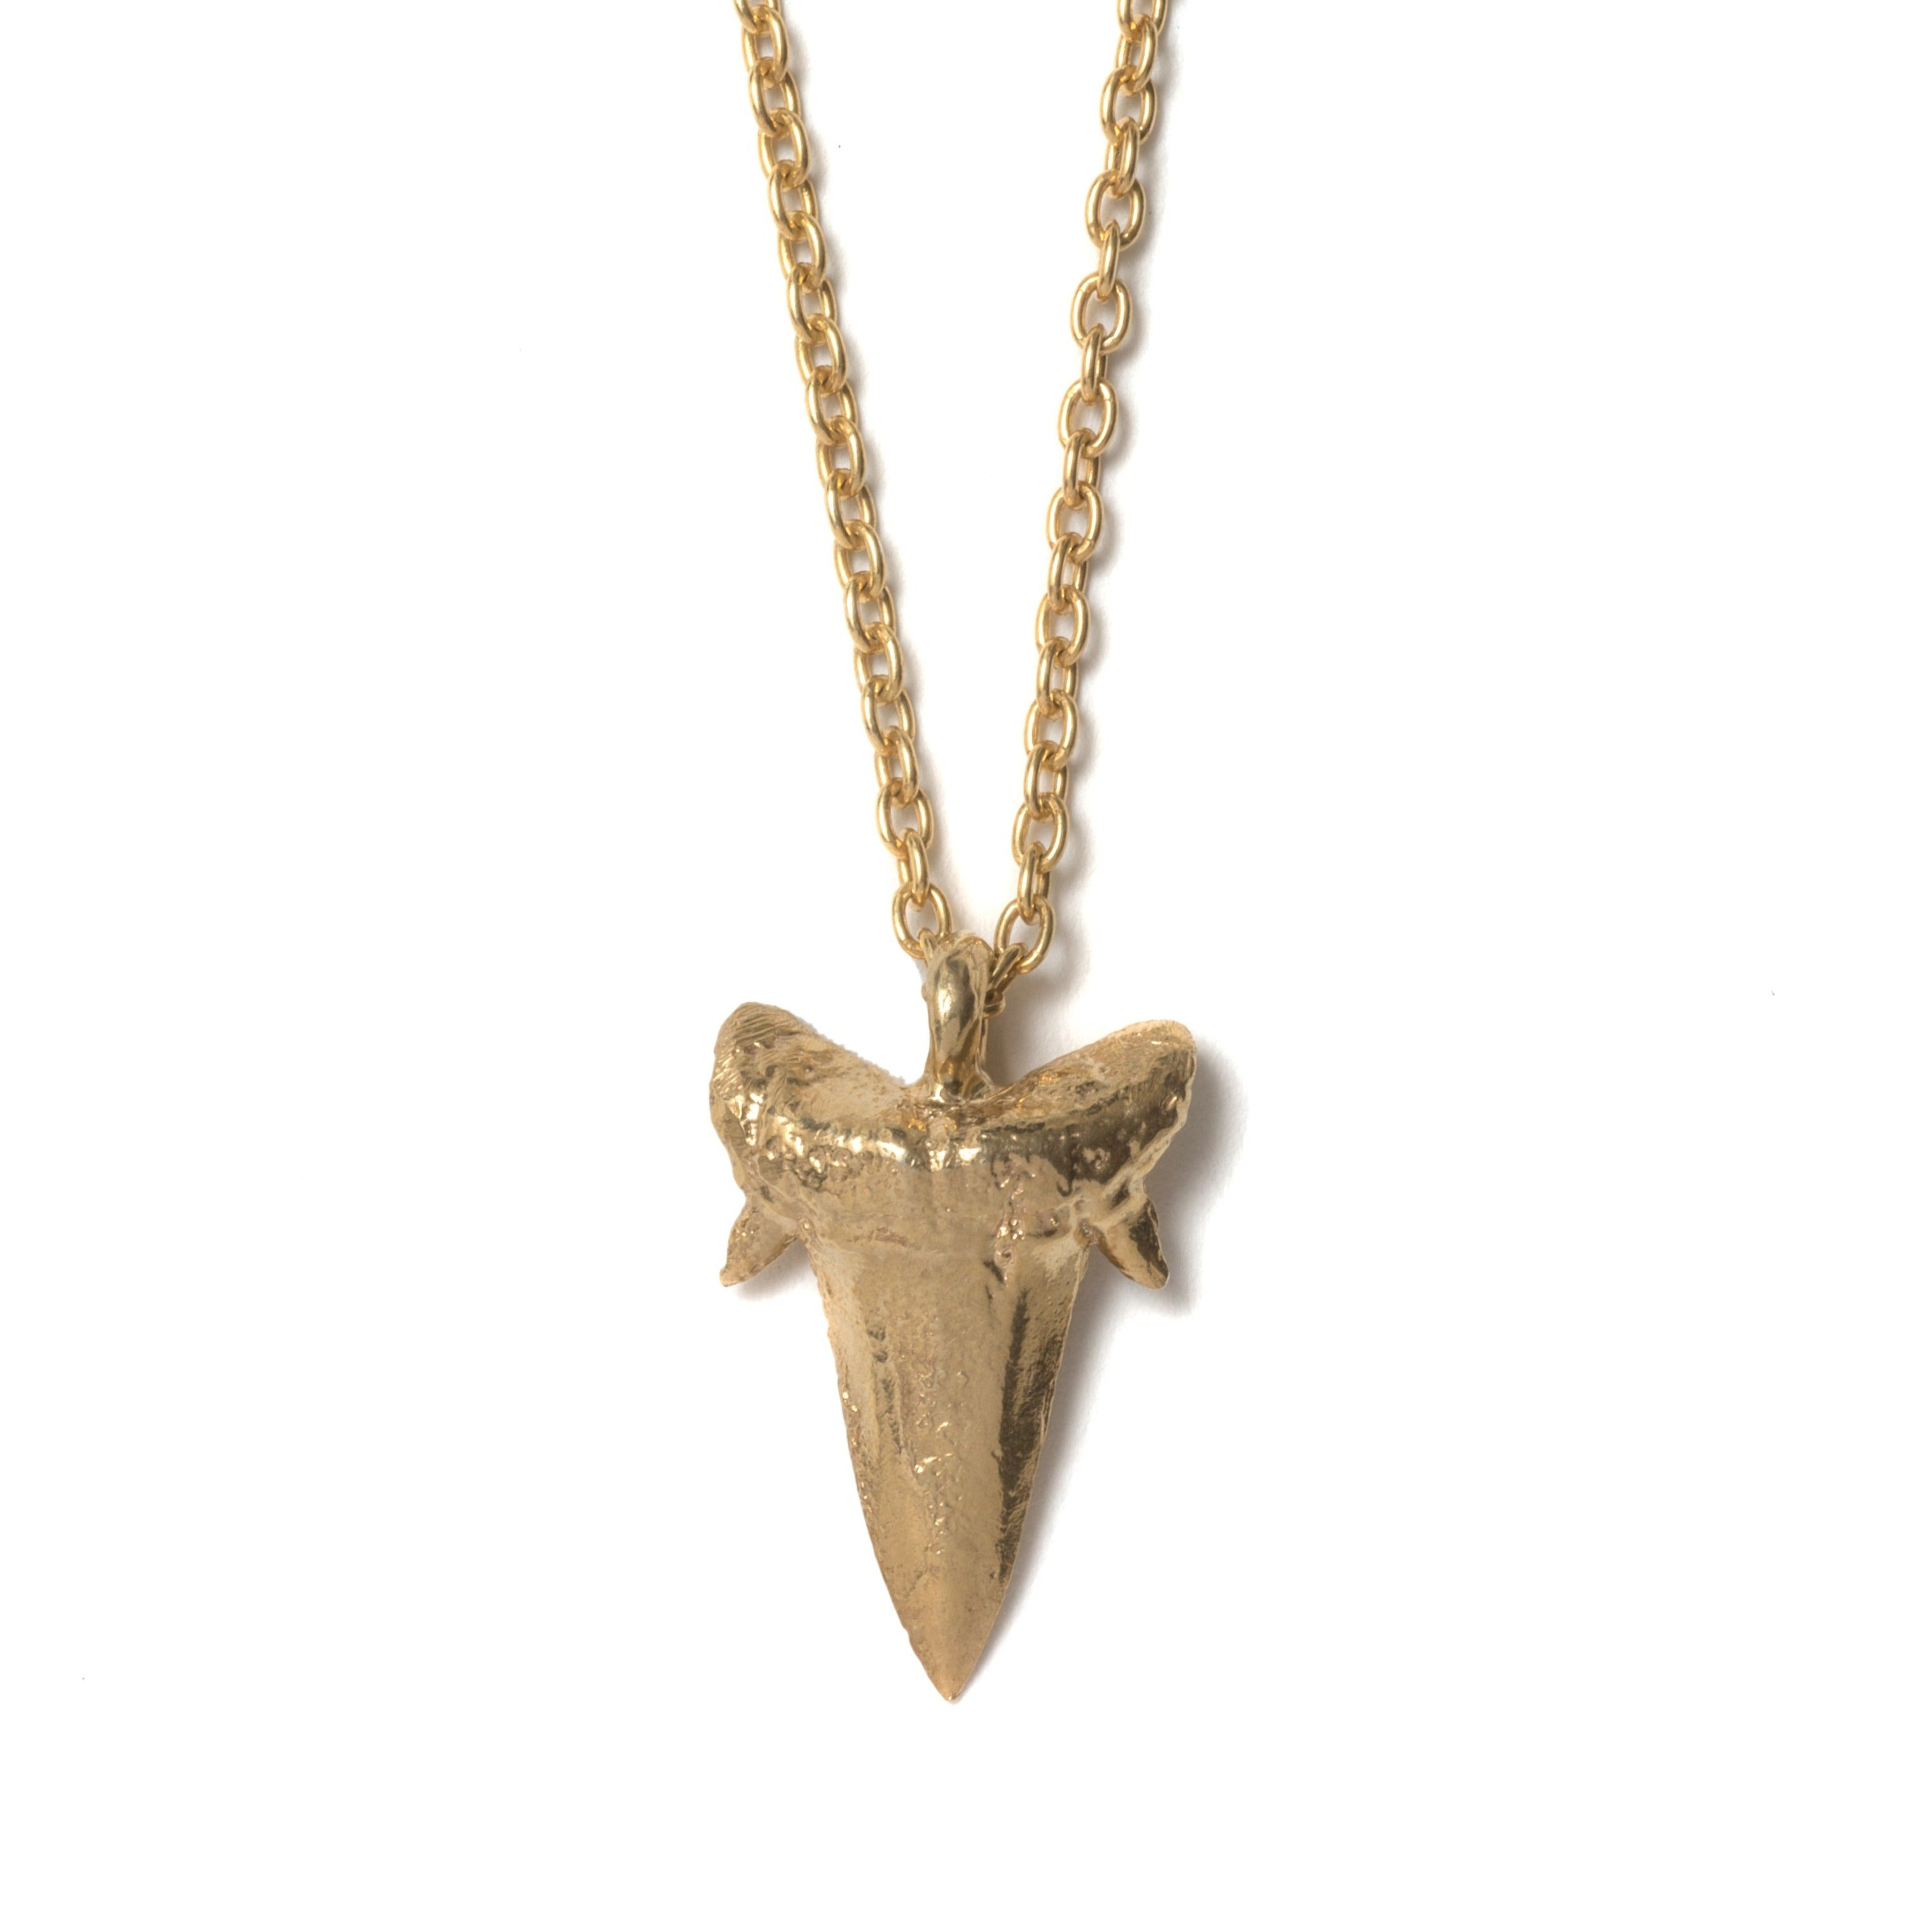 Small Sharks Tooth Necklace (Gold Plated)